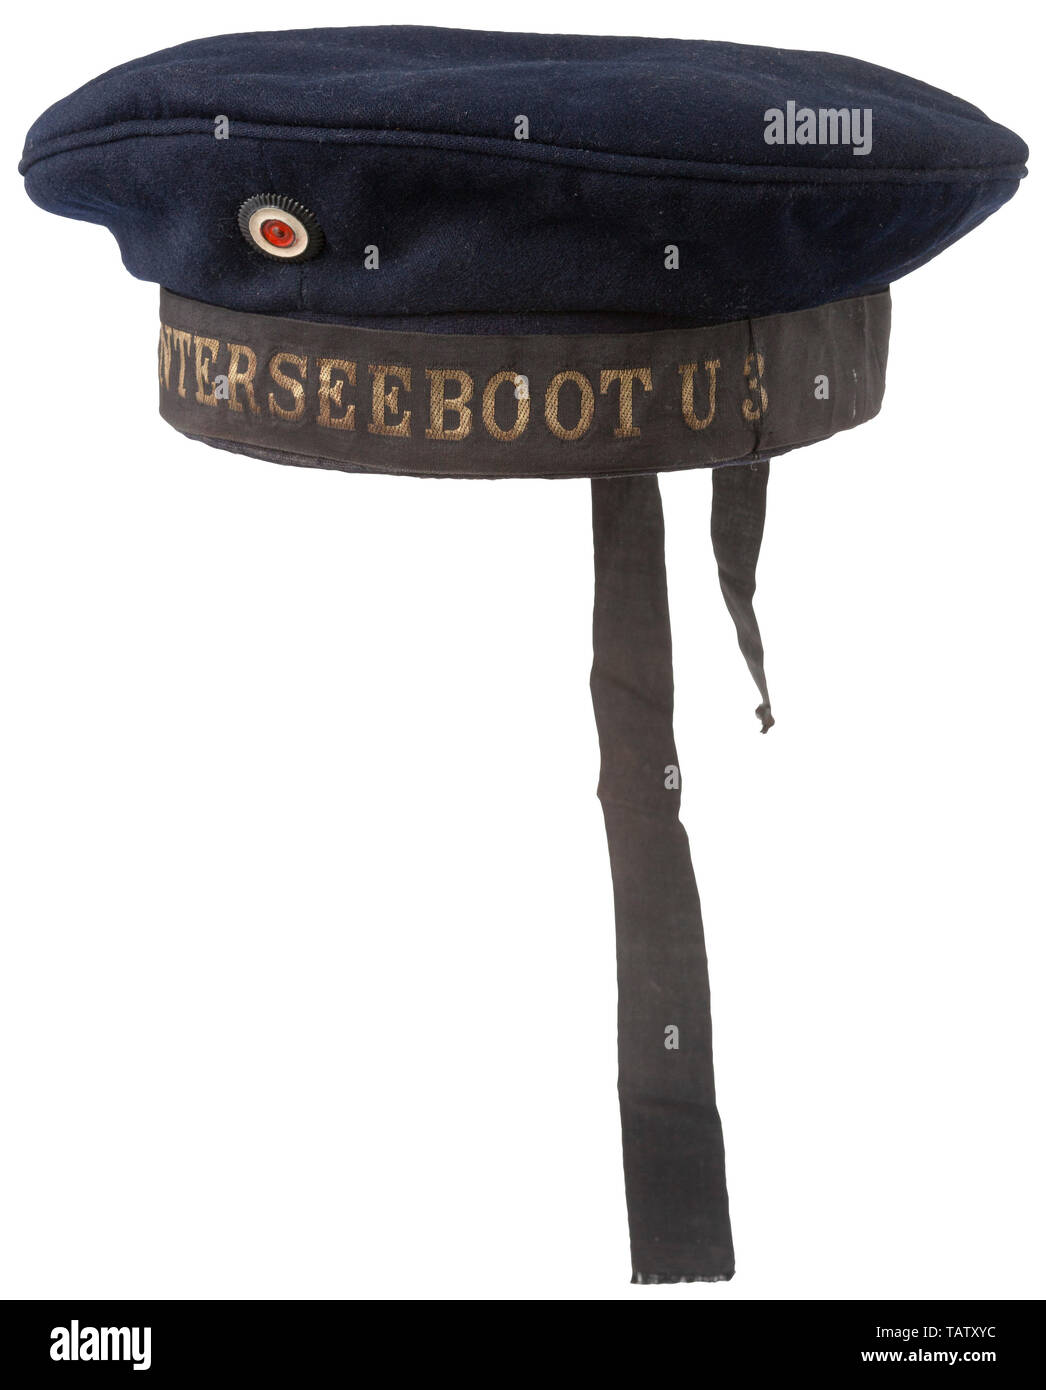 IMPERIAL GERMANY UNTIL 1914, An imperial German naval sailor cap Blue doe skin, blue cotton lining, embossed maker's logo, applied cloth owner's label, dark brown leather sweatband, black cap tally with 'S.M. Unterseeboot U3' in gold wire, metal cockade, part of cap tally missing. CCN193, Additional-Rights-Clearance-Info-Not-Available - Stock Image